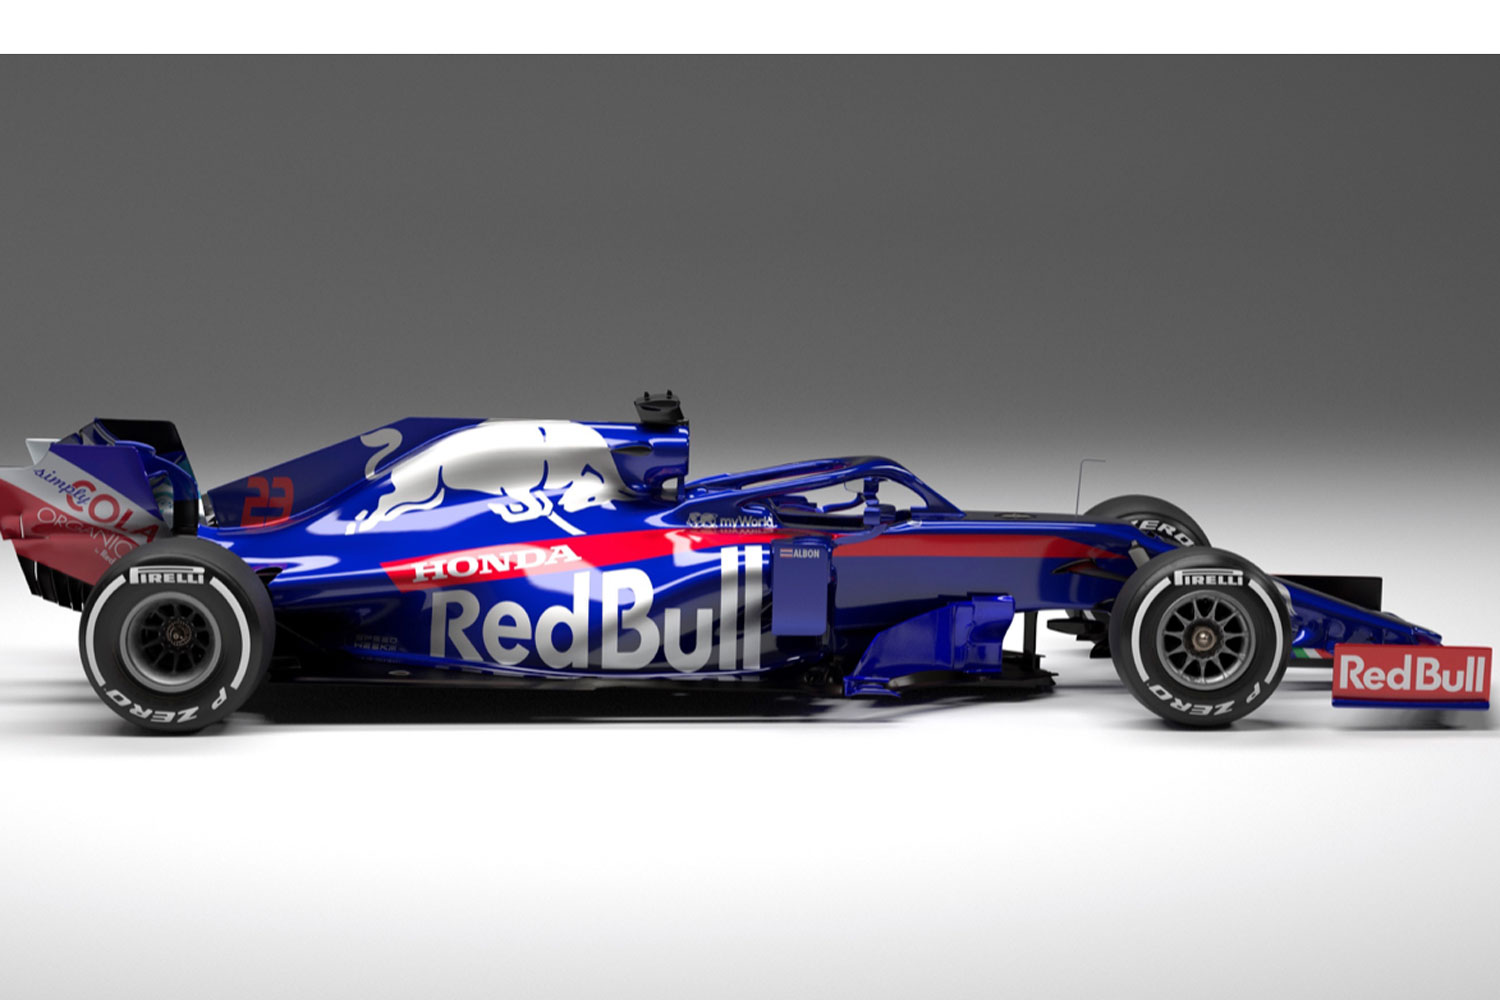 Toro Rosso look for improvement with new line-up